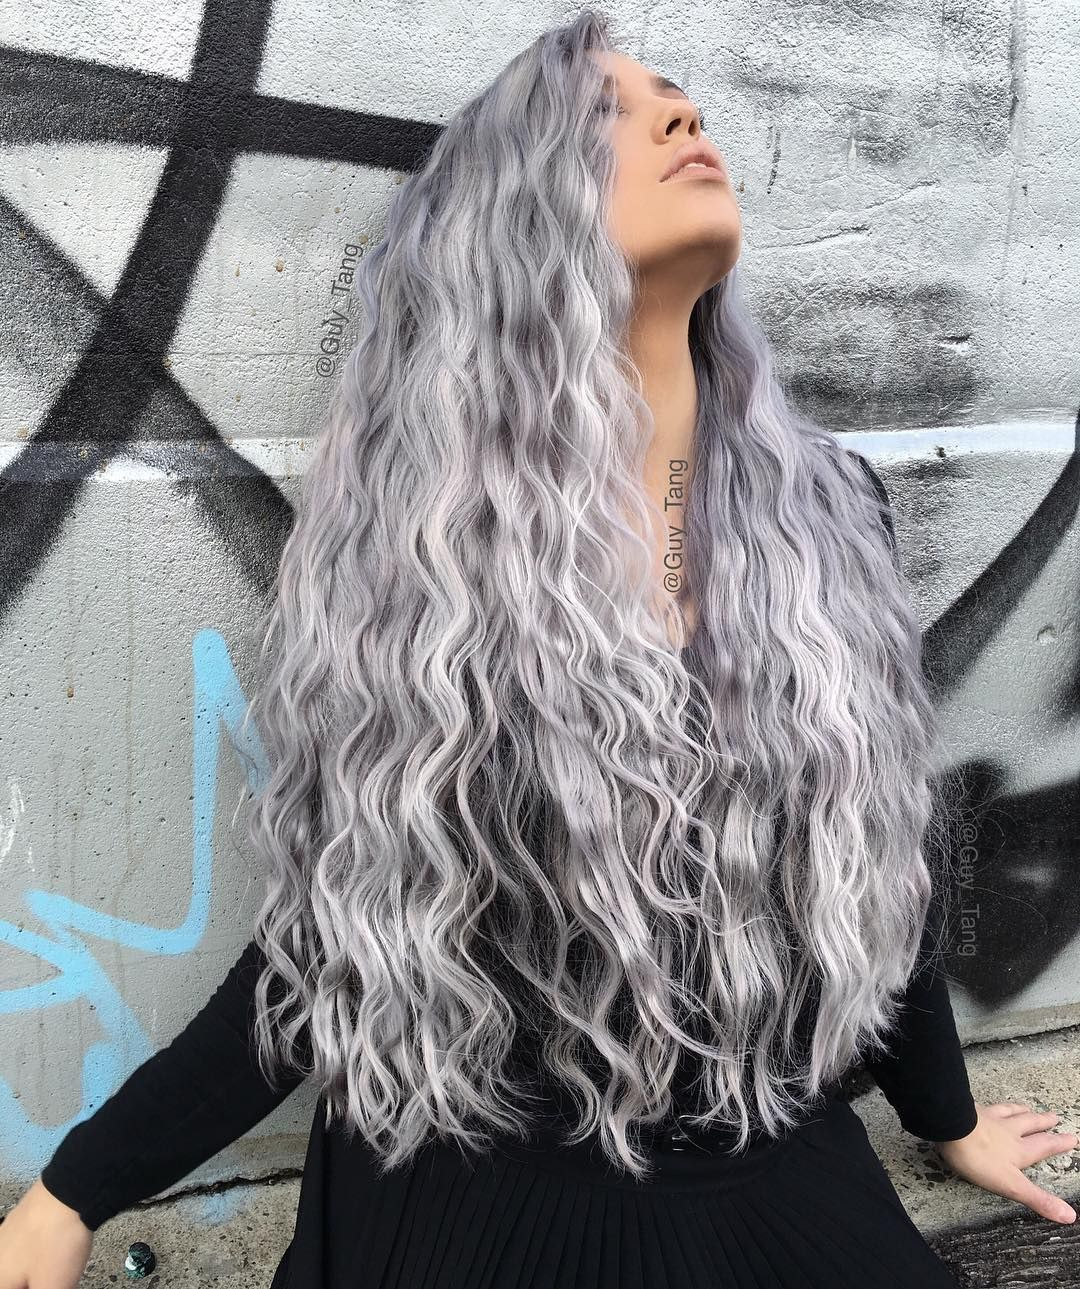 Pin By Cindy Lahde On Hair Hair Hair Hair Styles Grey Curly Hair Long Gray Hair